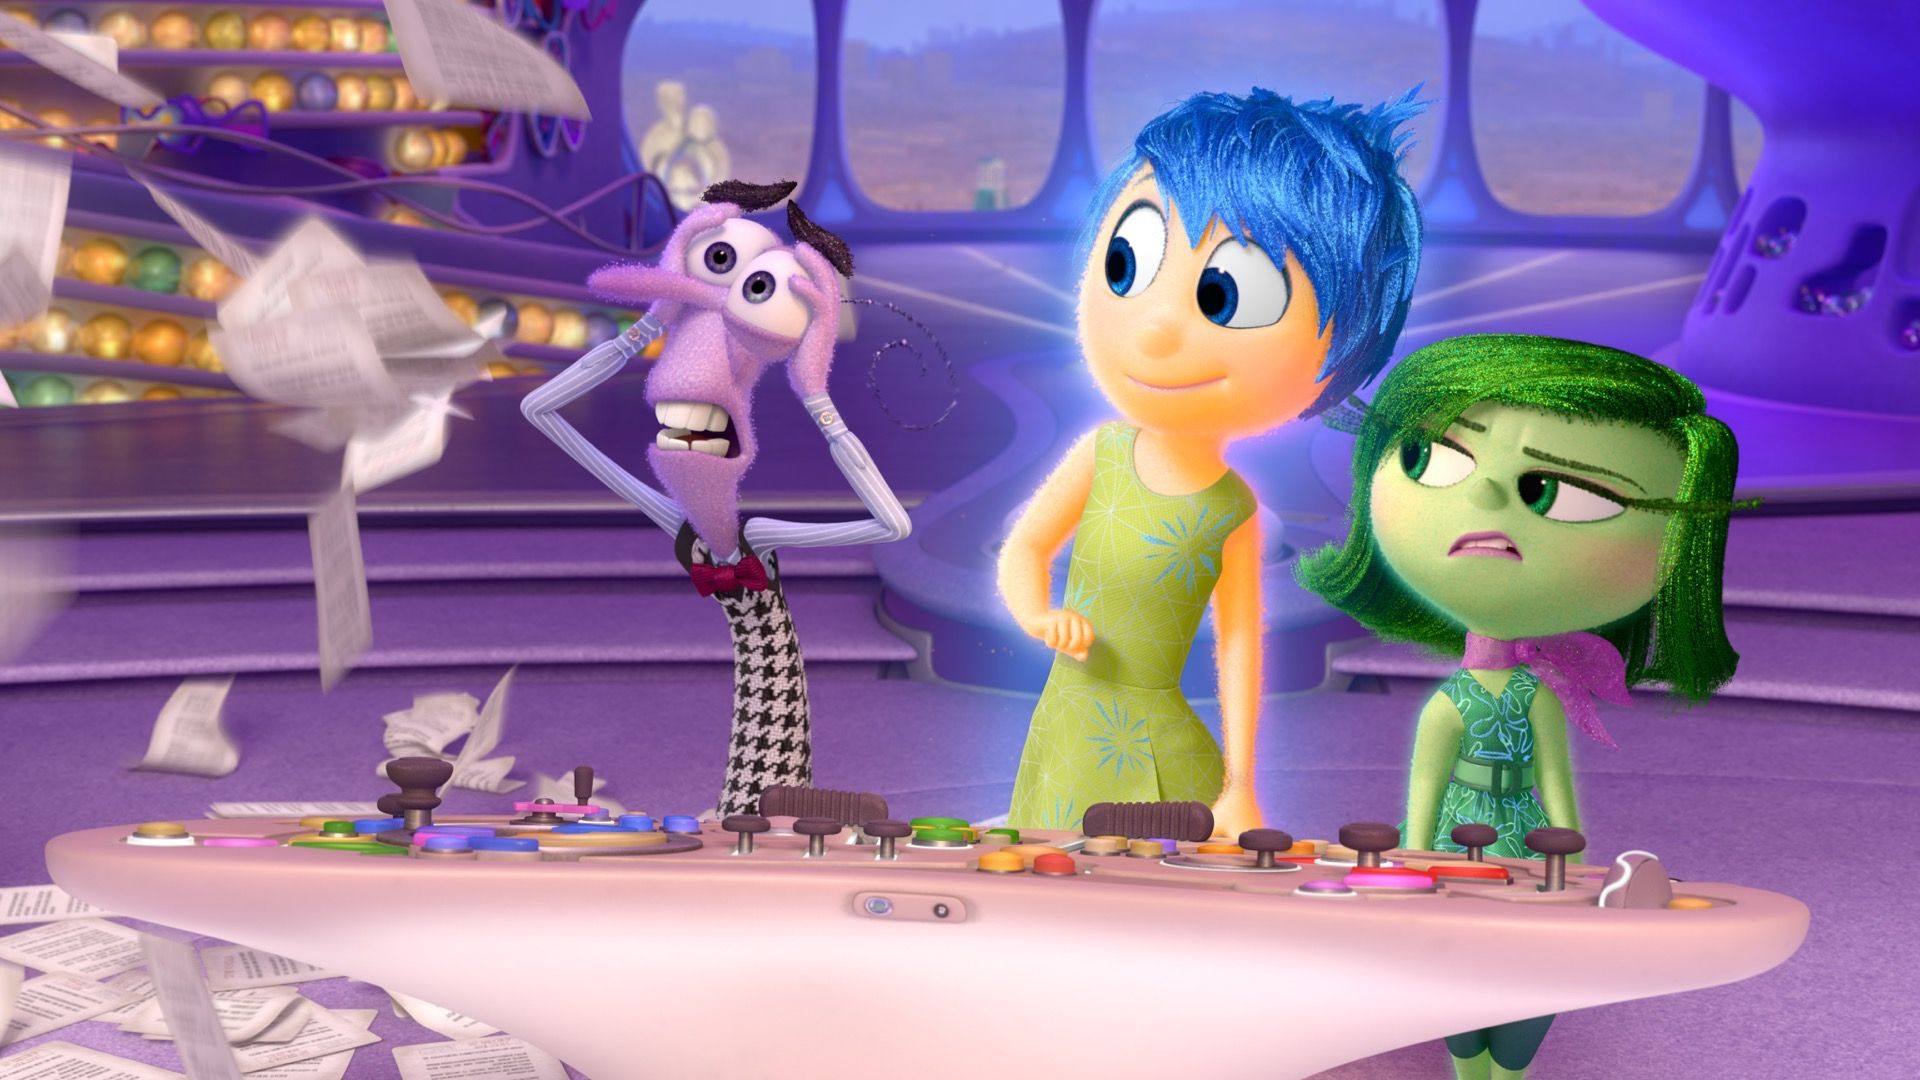 Pin by Richard Sugg on Pixar Films Inside out trailer